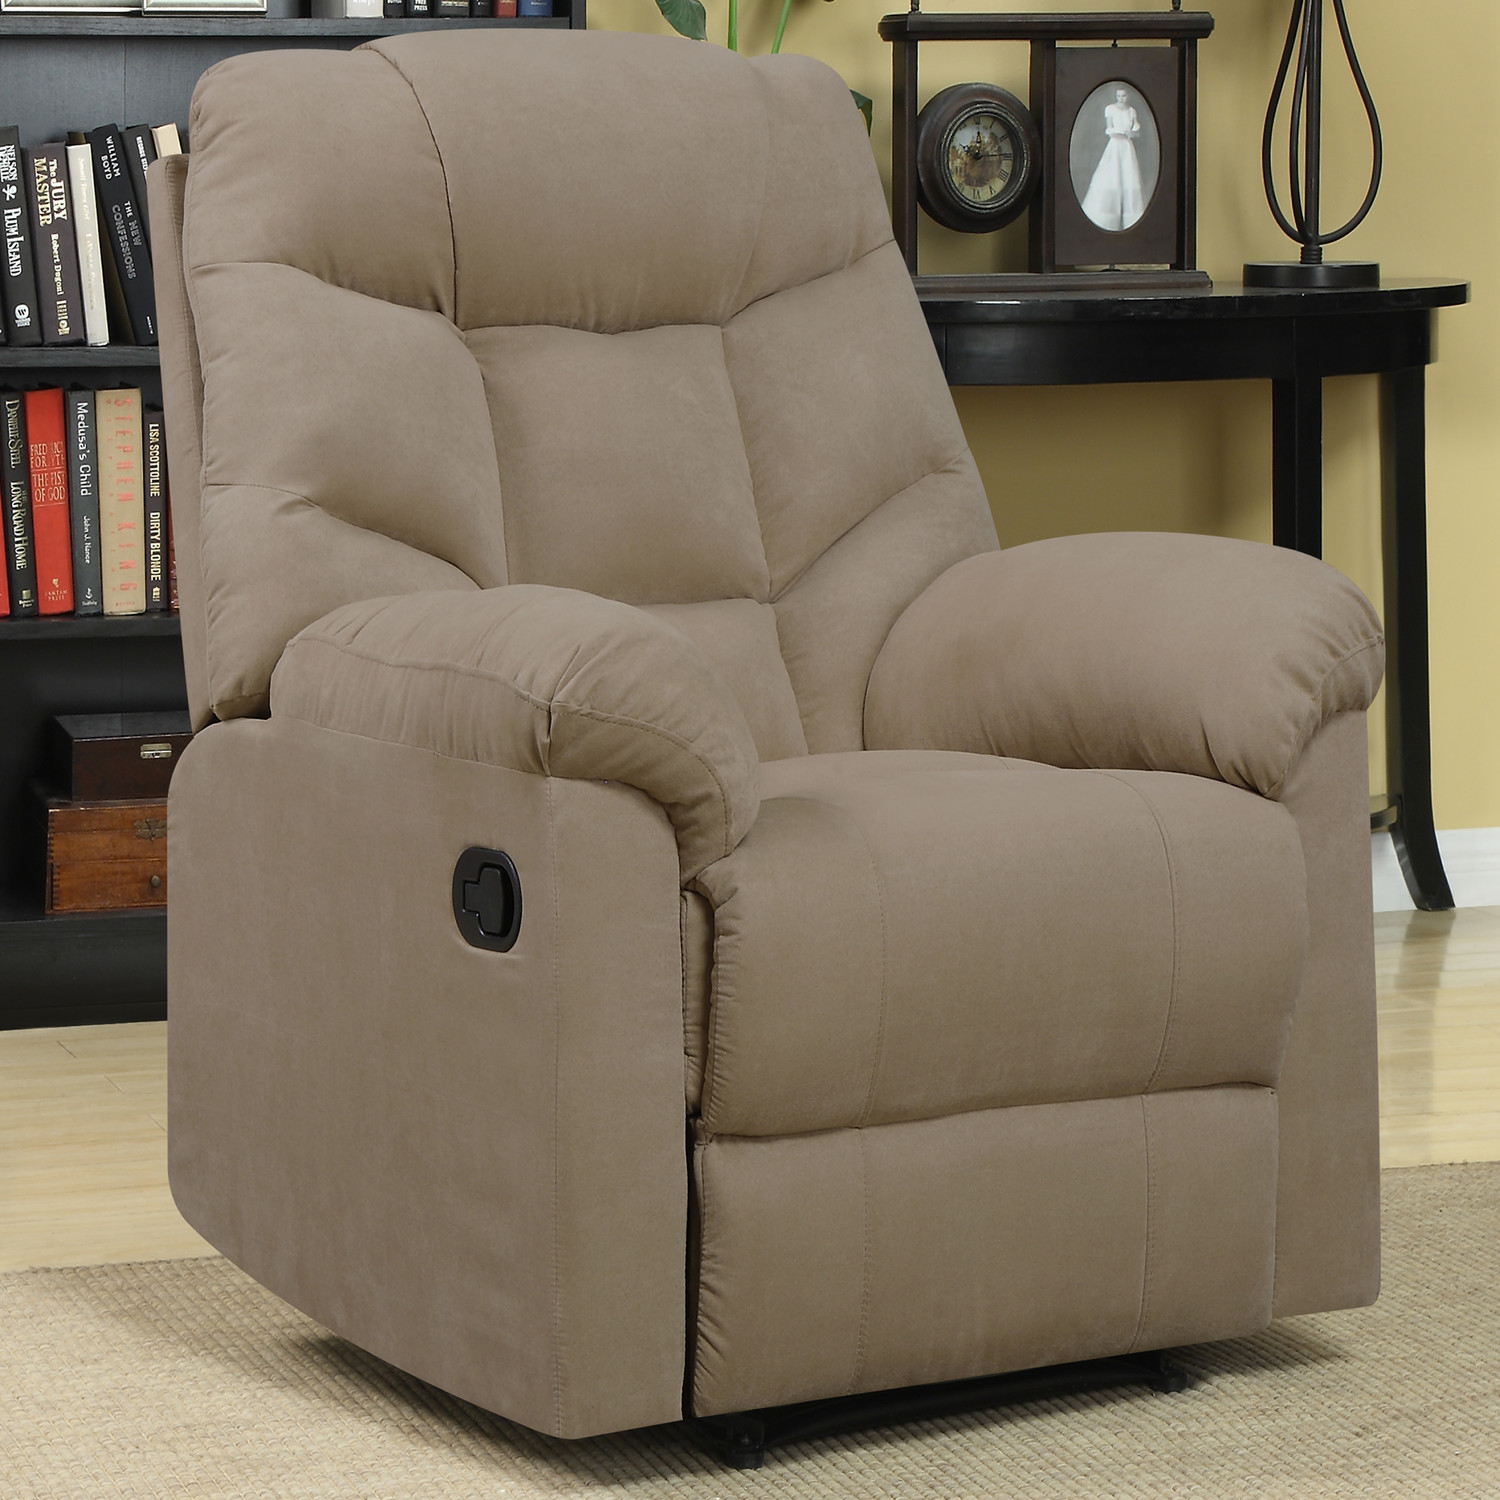 Excellent Recliners Furniture for Your Room | HomesFeed